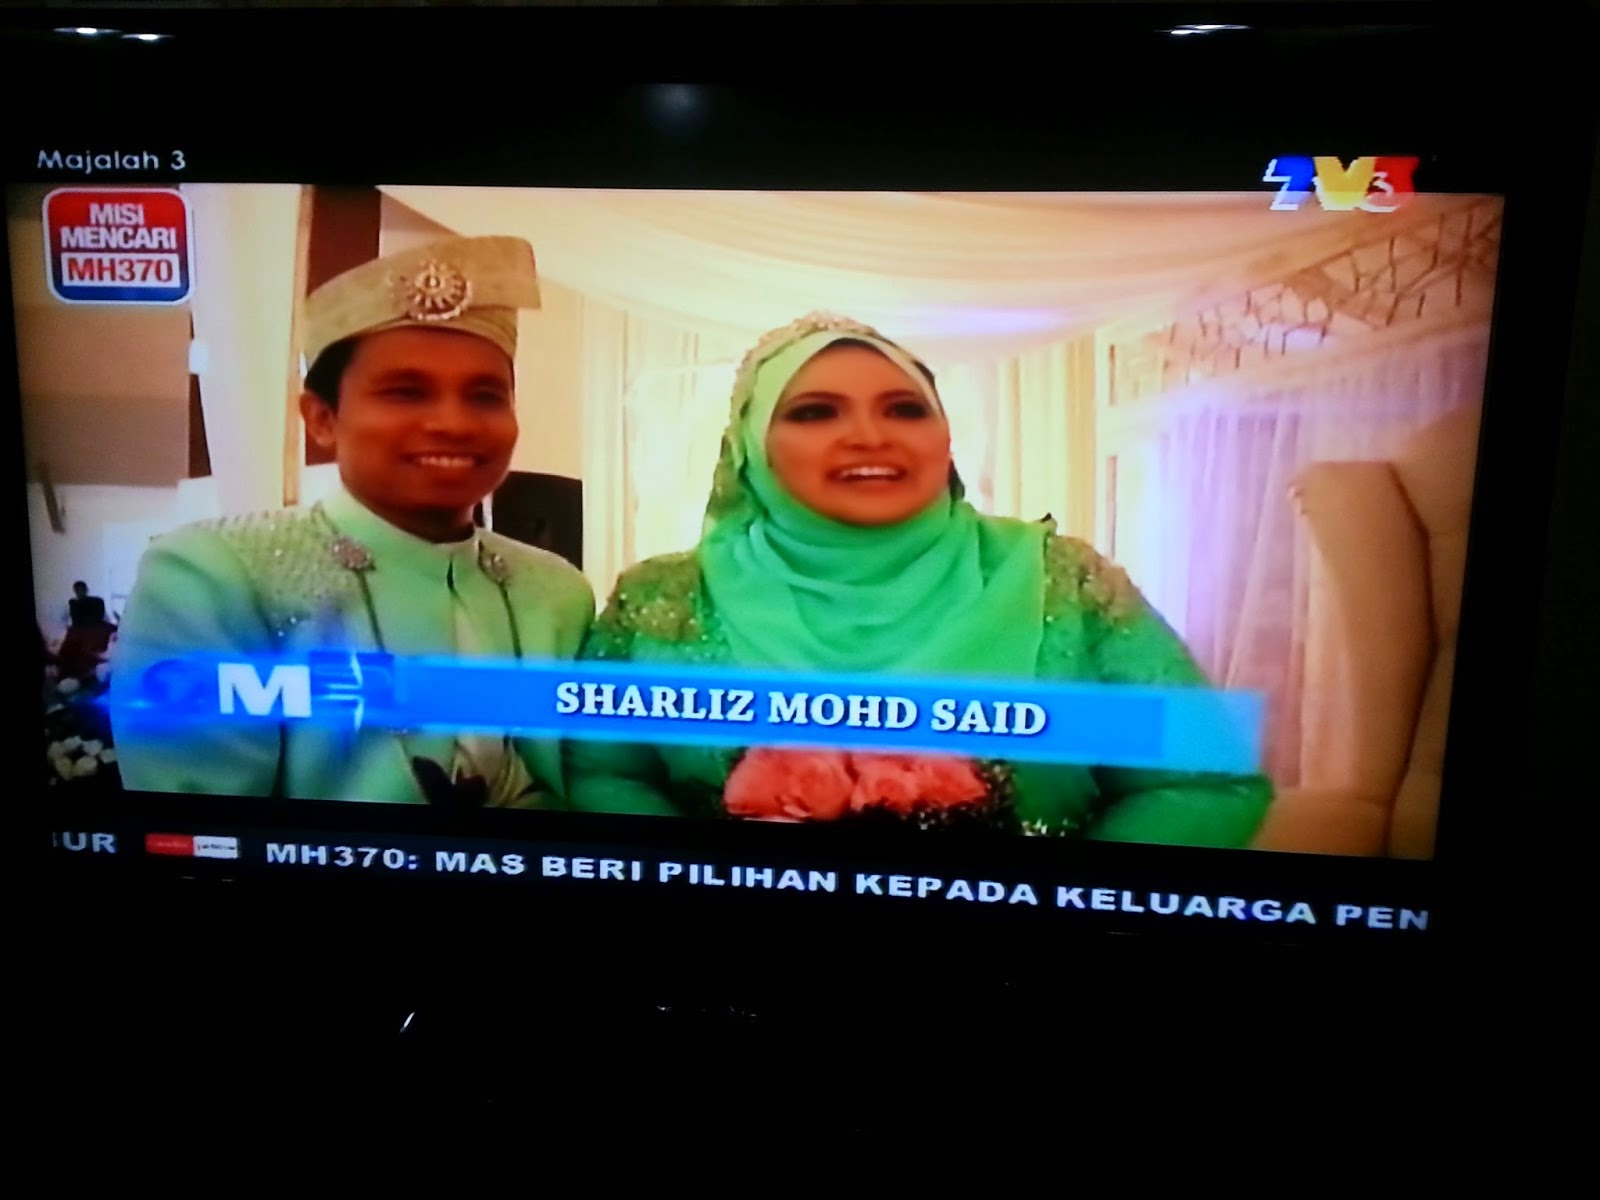 MyWedding - Majalah 3 TV3 (2014)